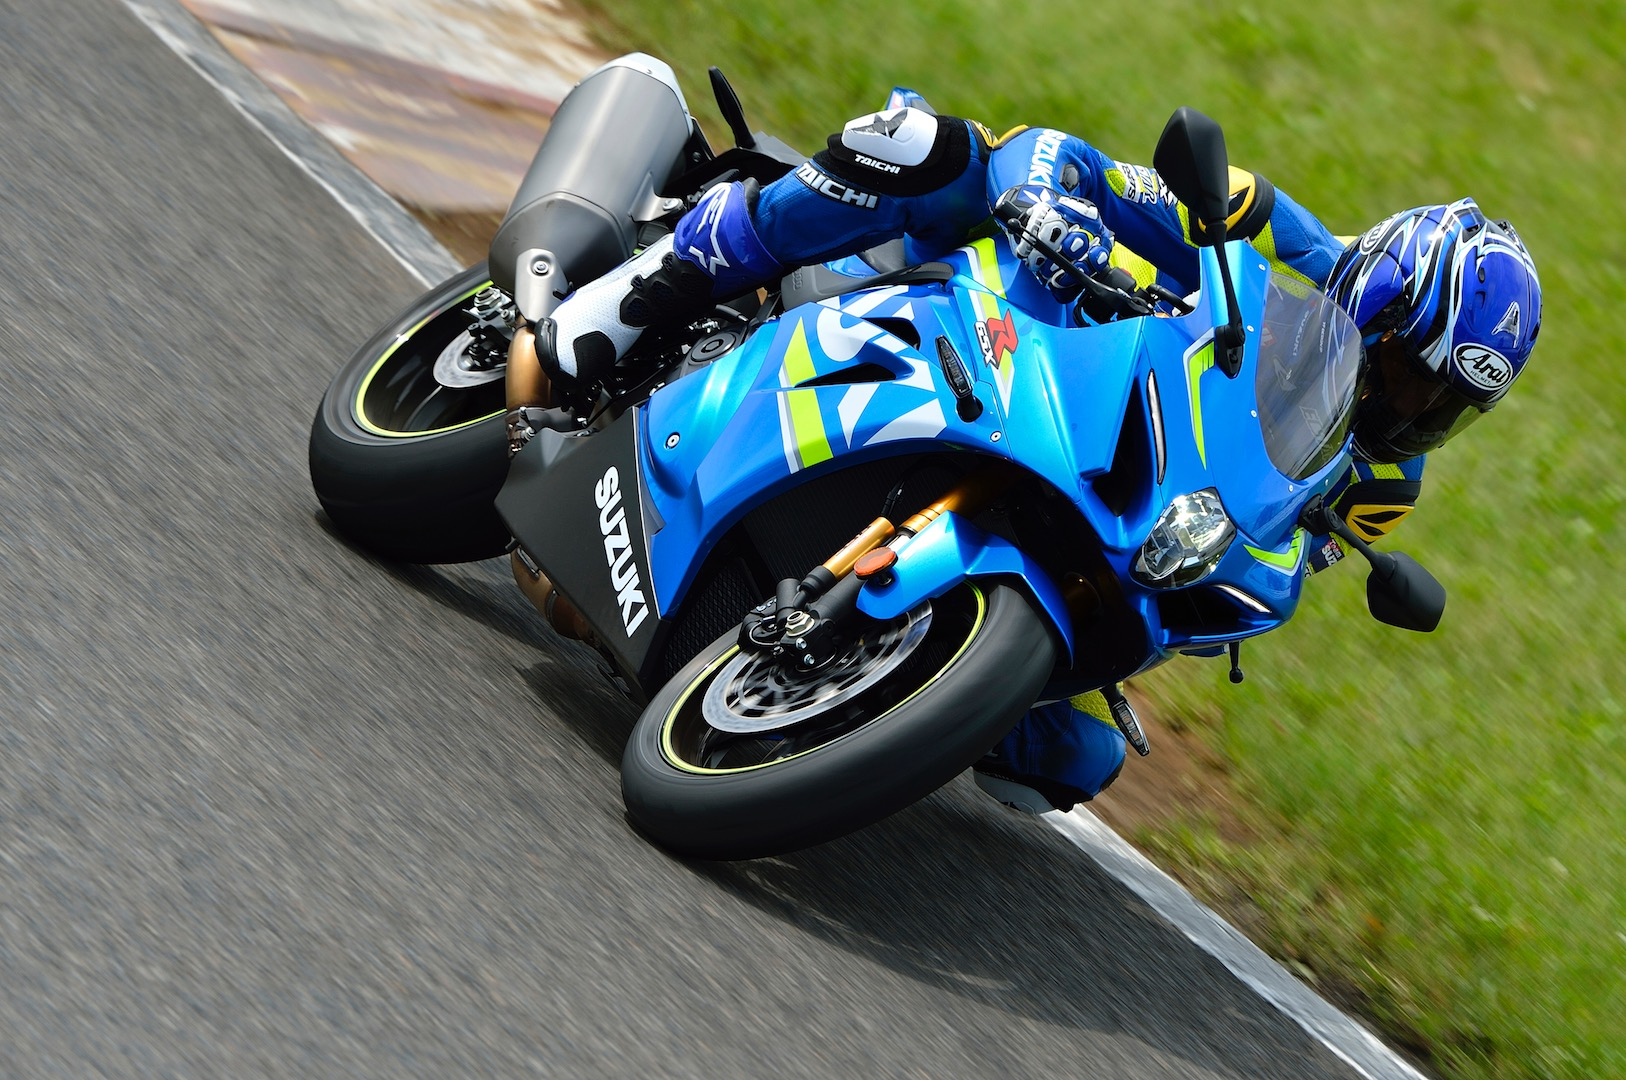 2017-Suzuki-GSX-R100-First-Look-Preview-5